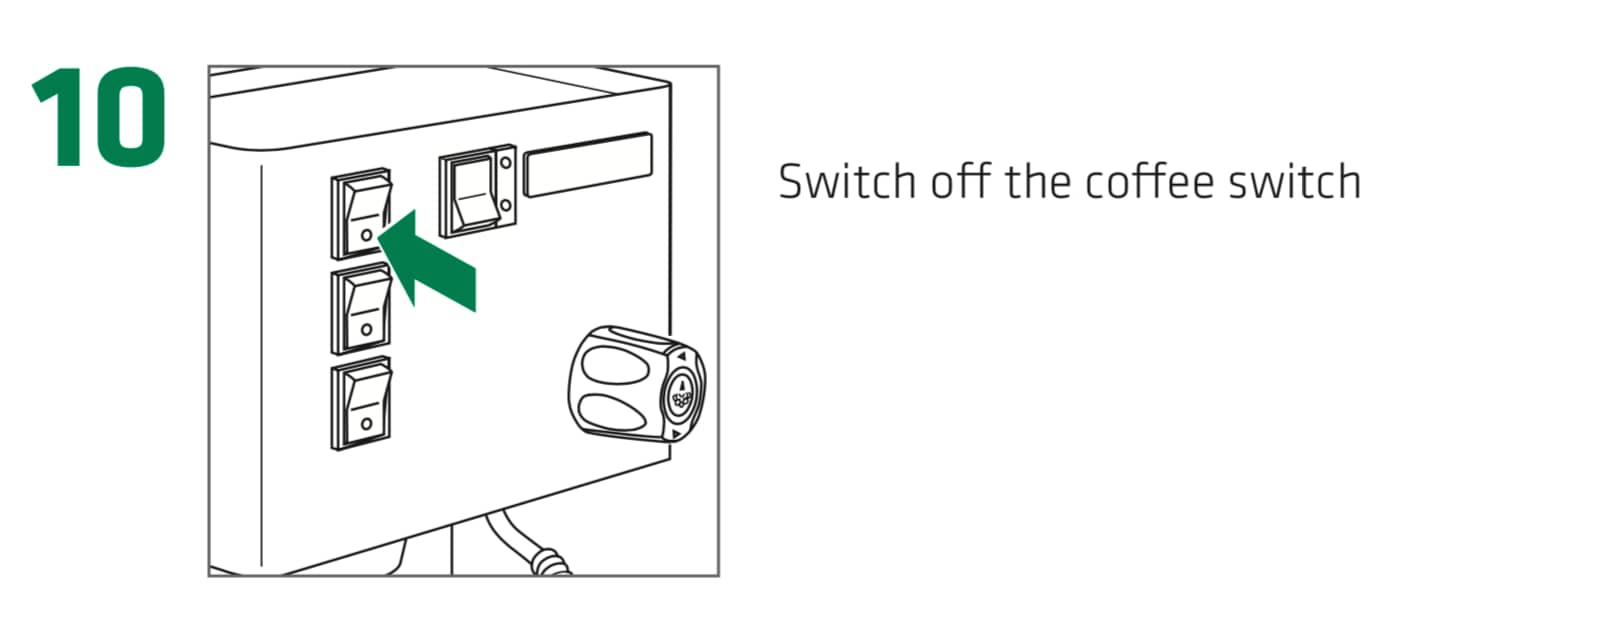 How to set up the Rancilio Silvia Espresso Machine, Step10 : Switch off the coffee switch.